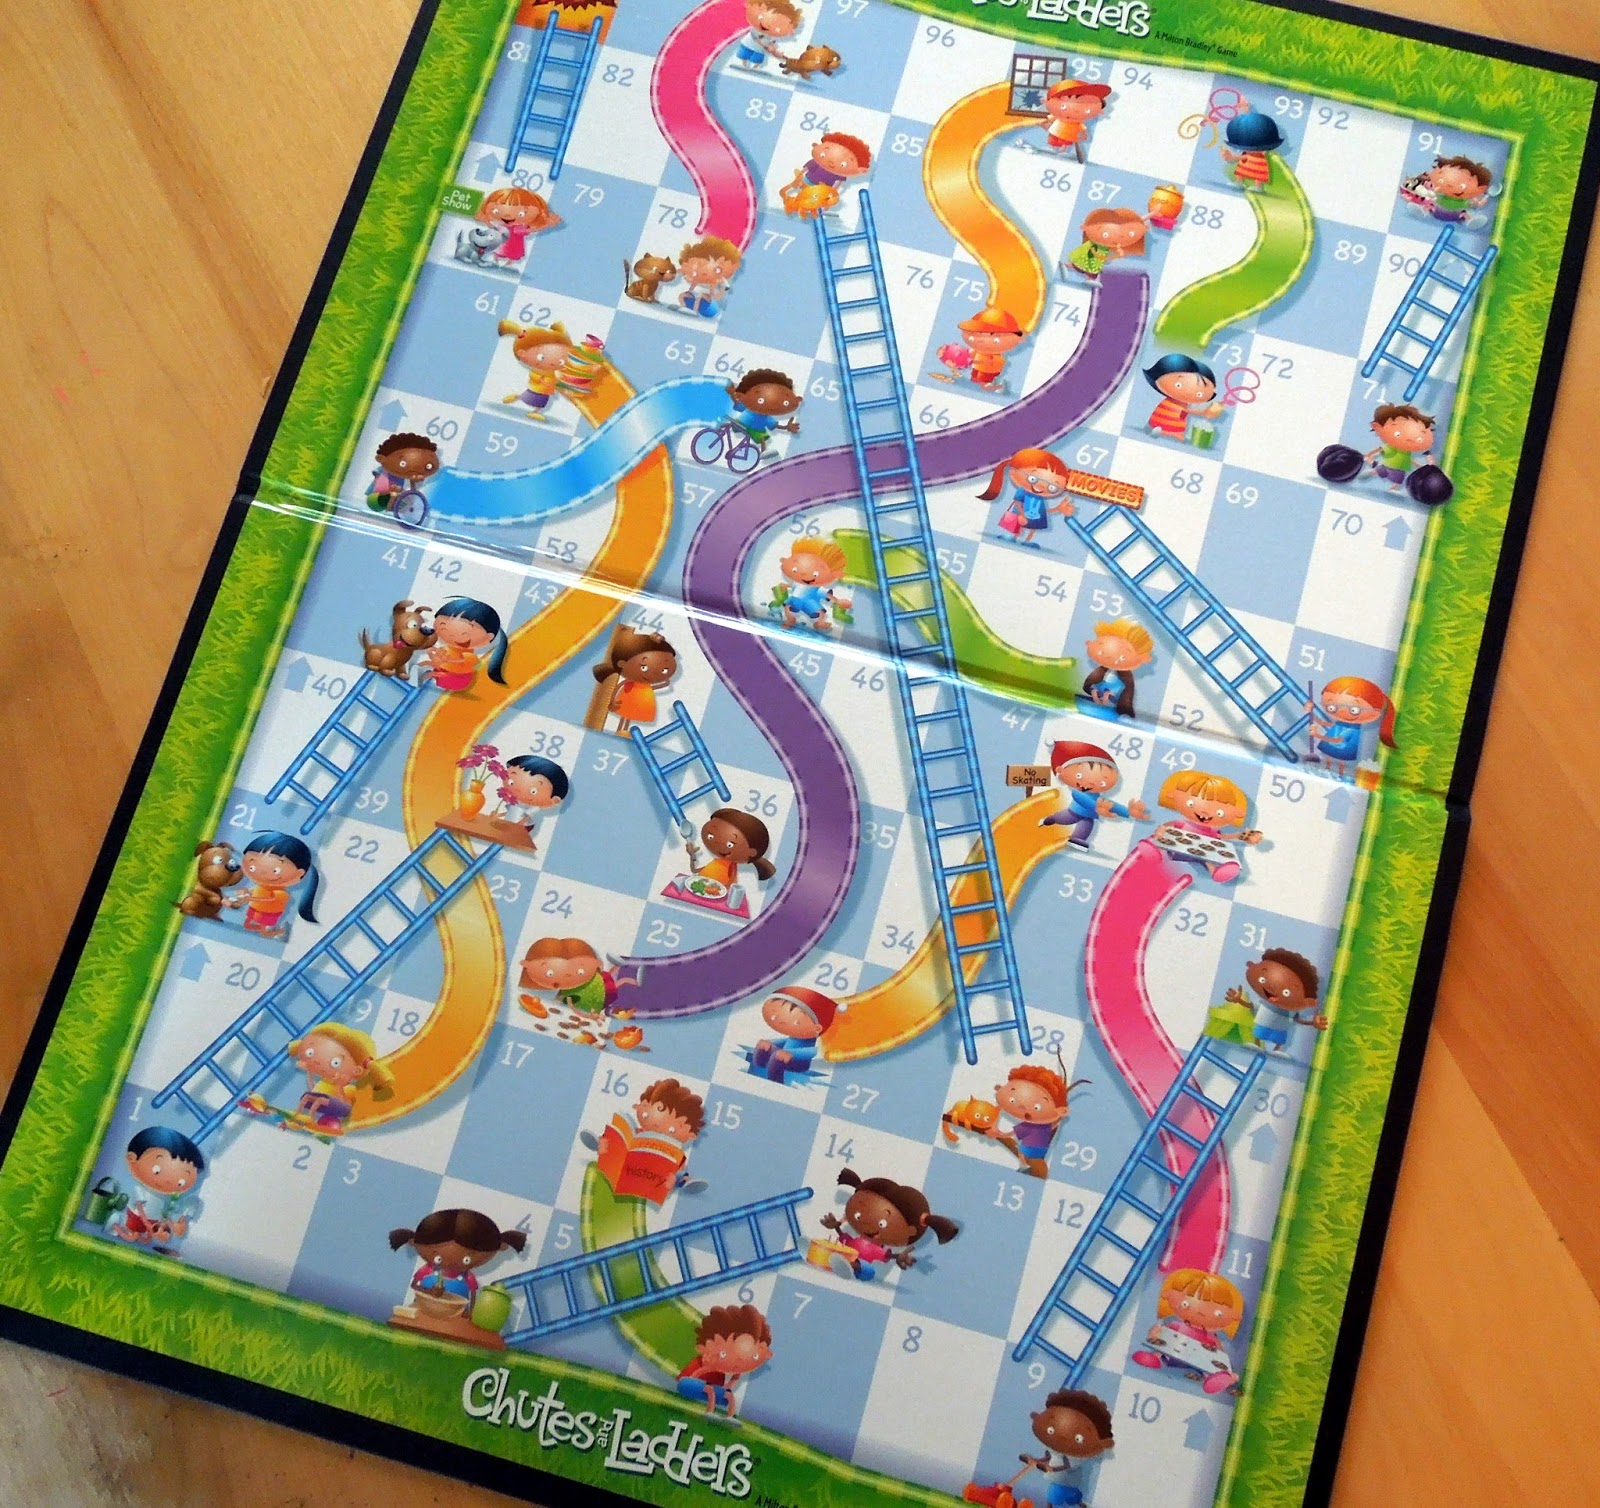 Chutes & Ladders as Metaphor for Life and Creative Practice by Jodi ...